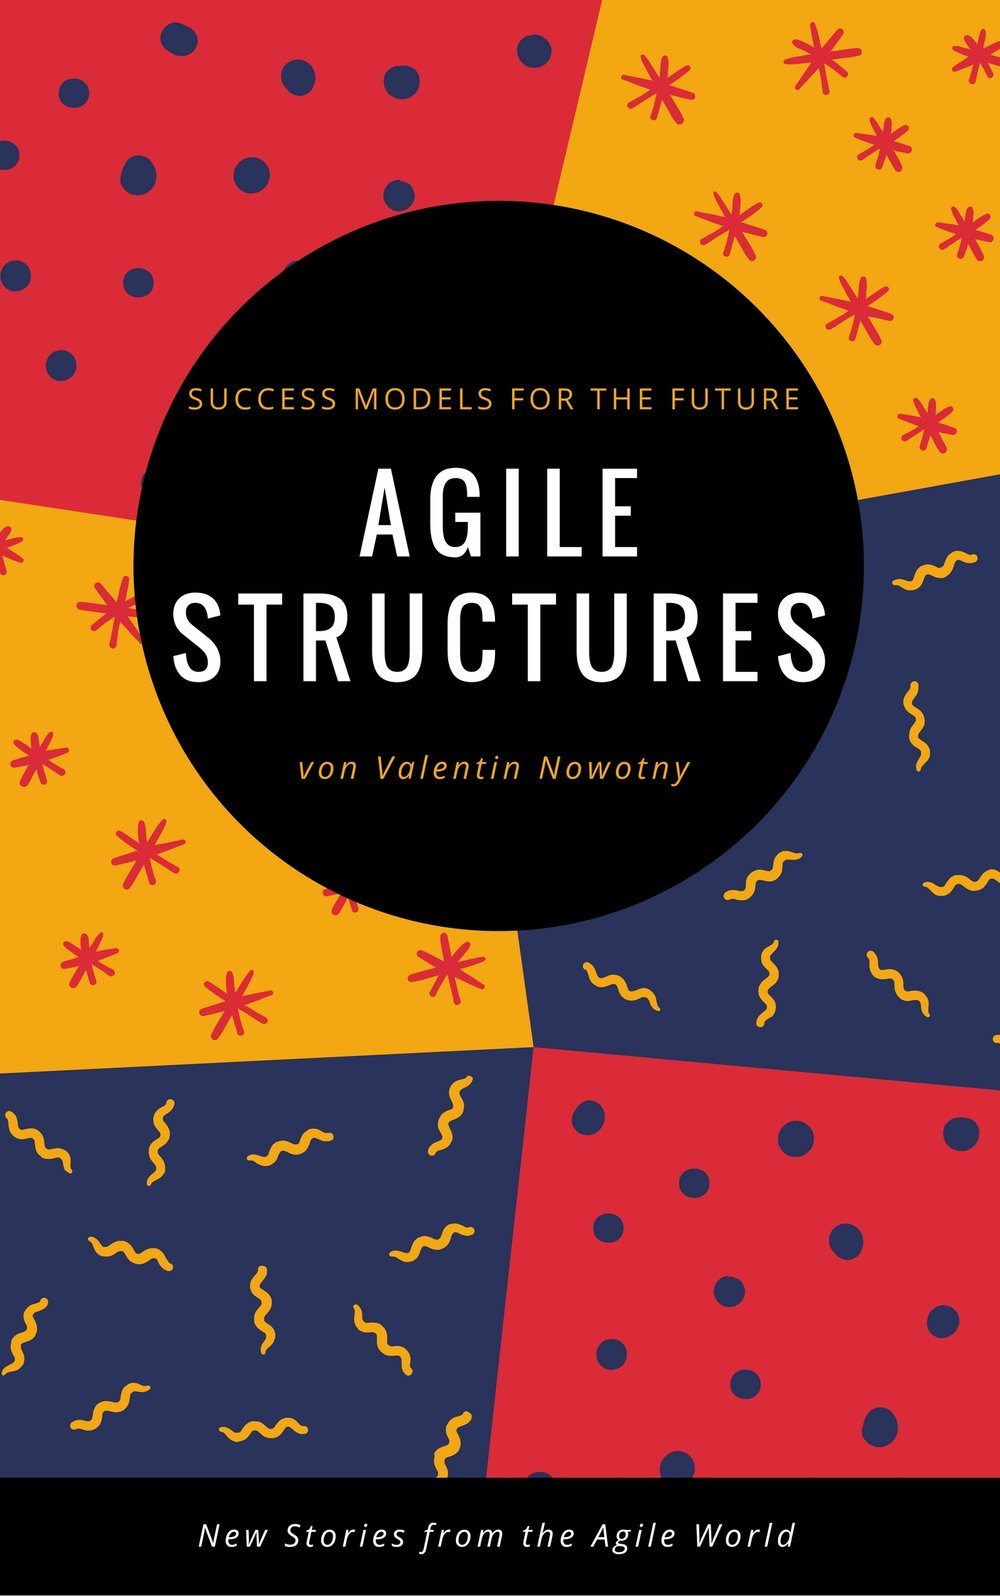 Agile Strukturres_ Success Models of the Future (1).jpg